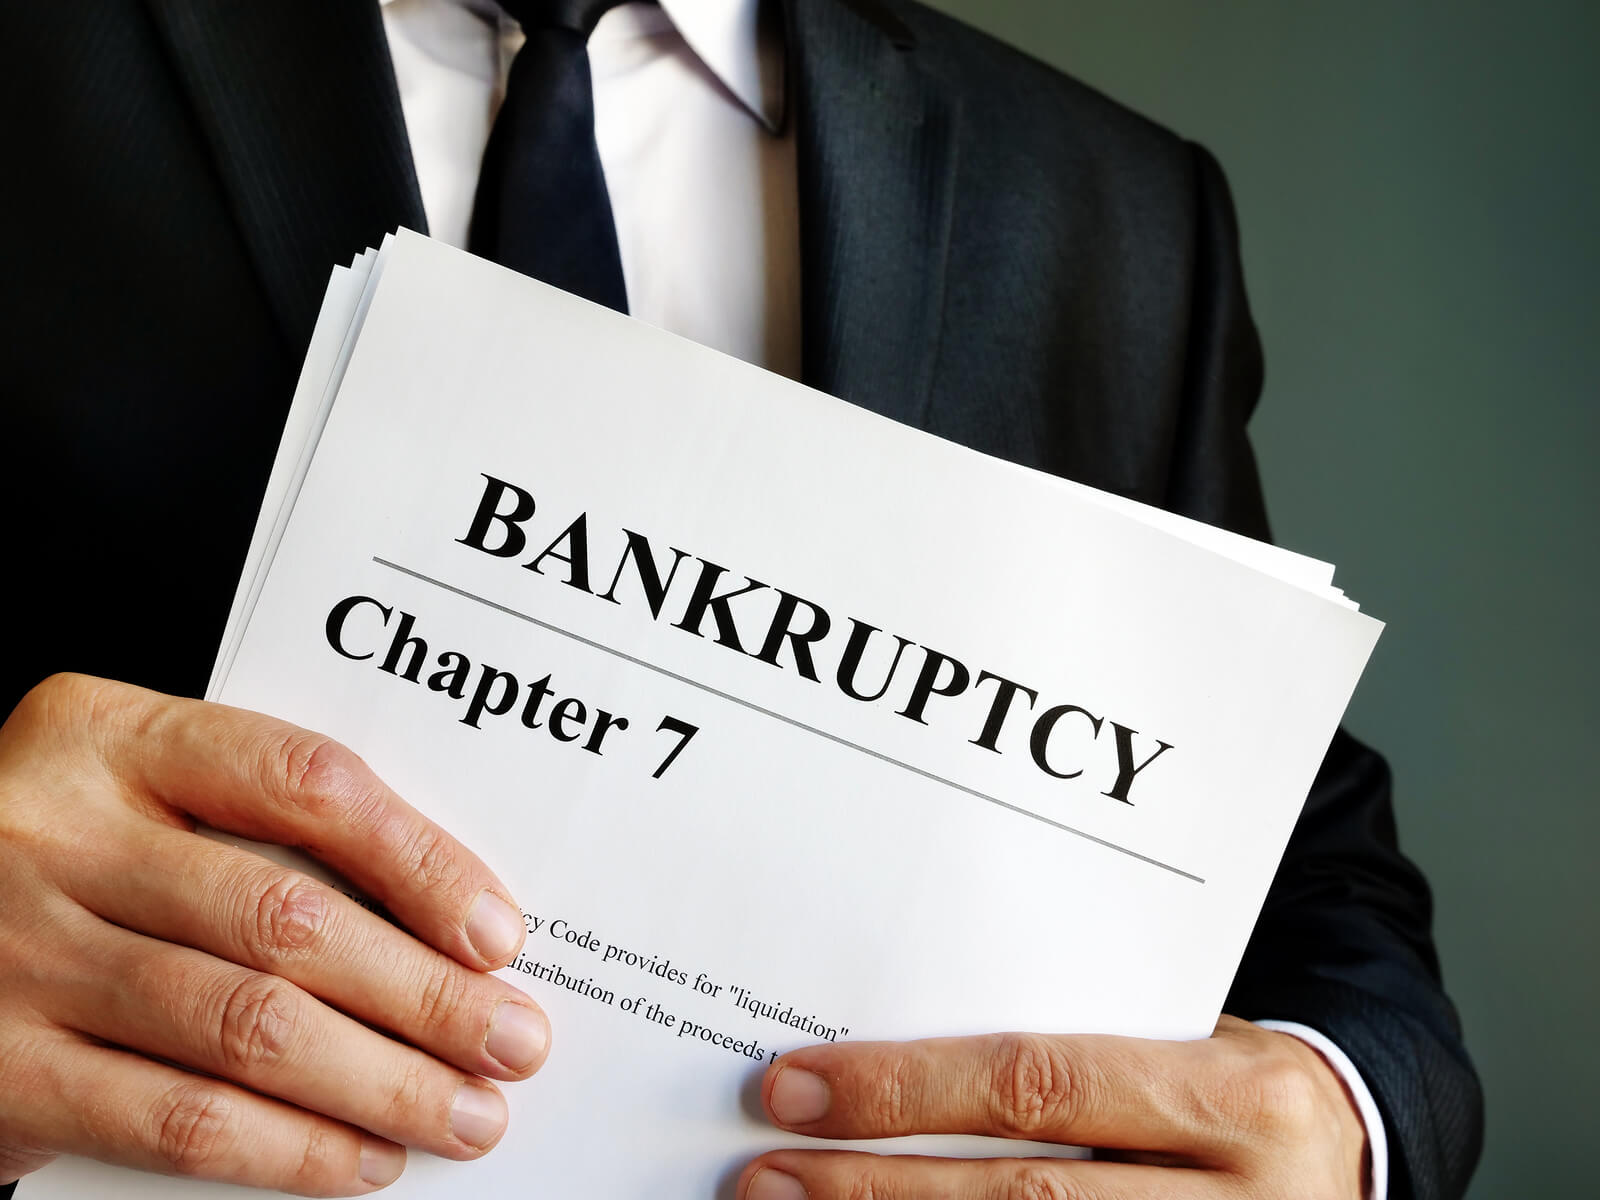 personal-bankruptcy-public-record-man-holding-paperwork